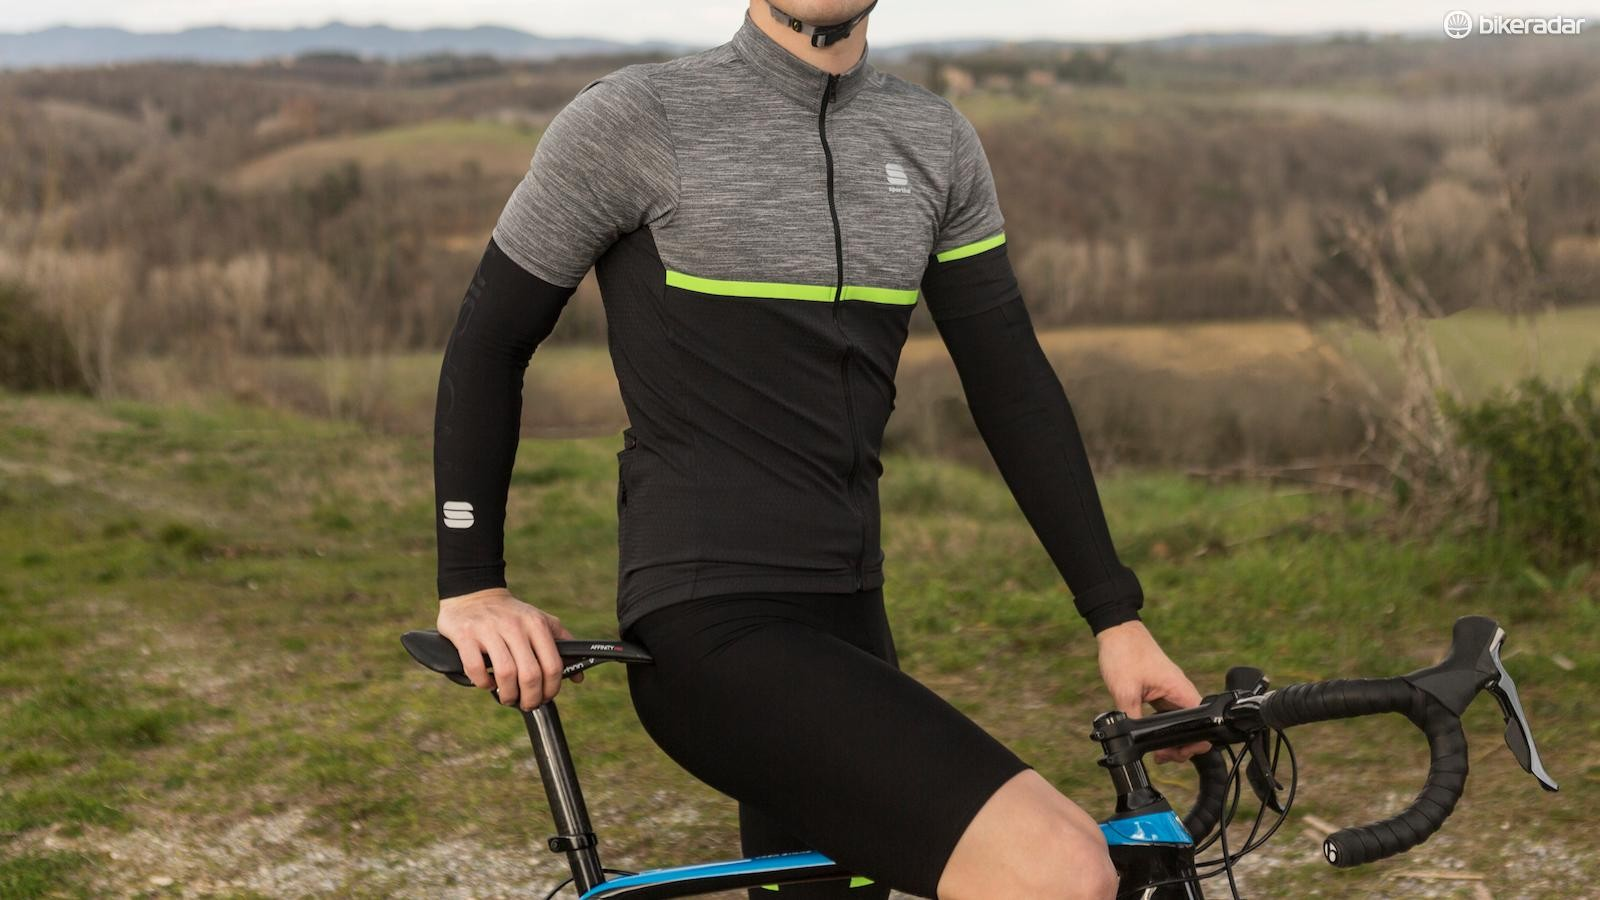 Whilst Sportful's tailored cut remains, the Giara range has a more relaxed fit